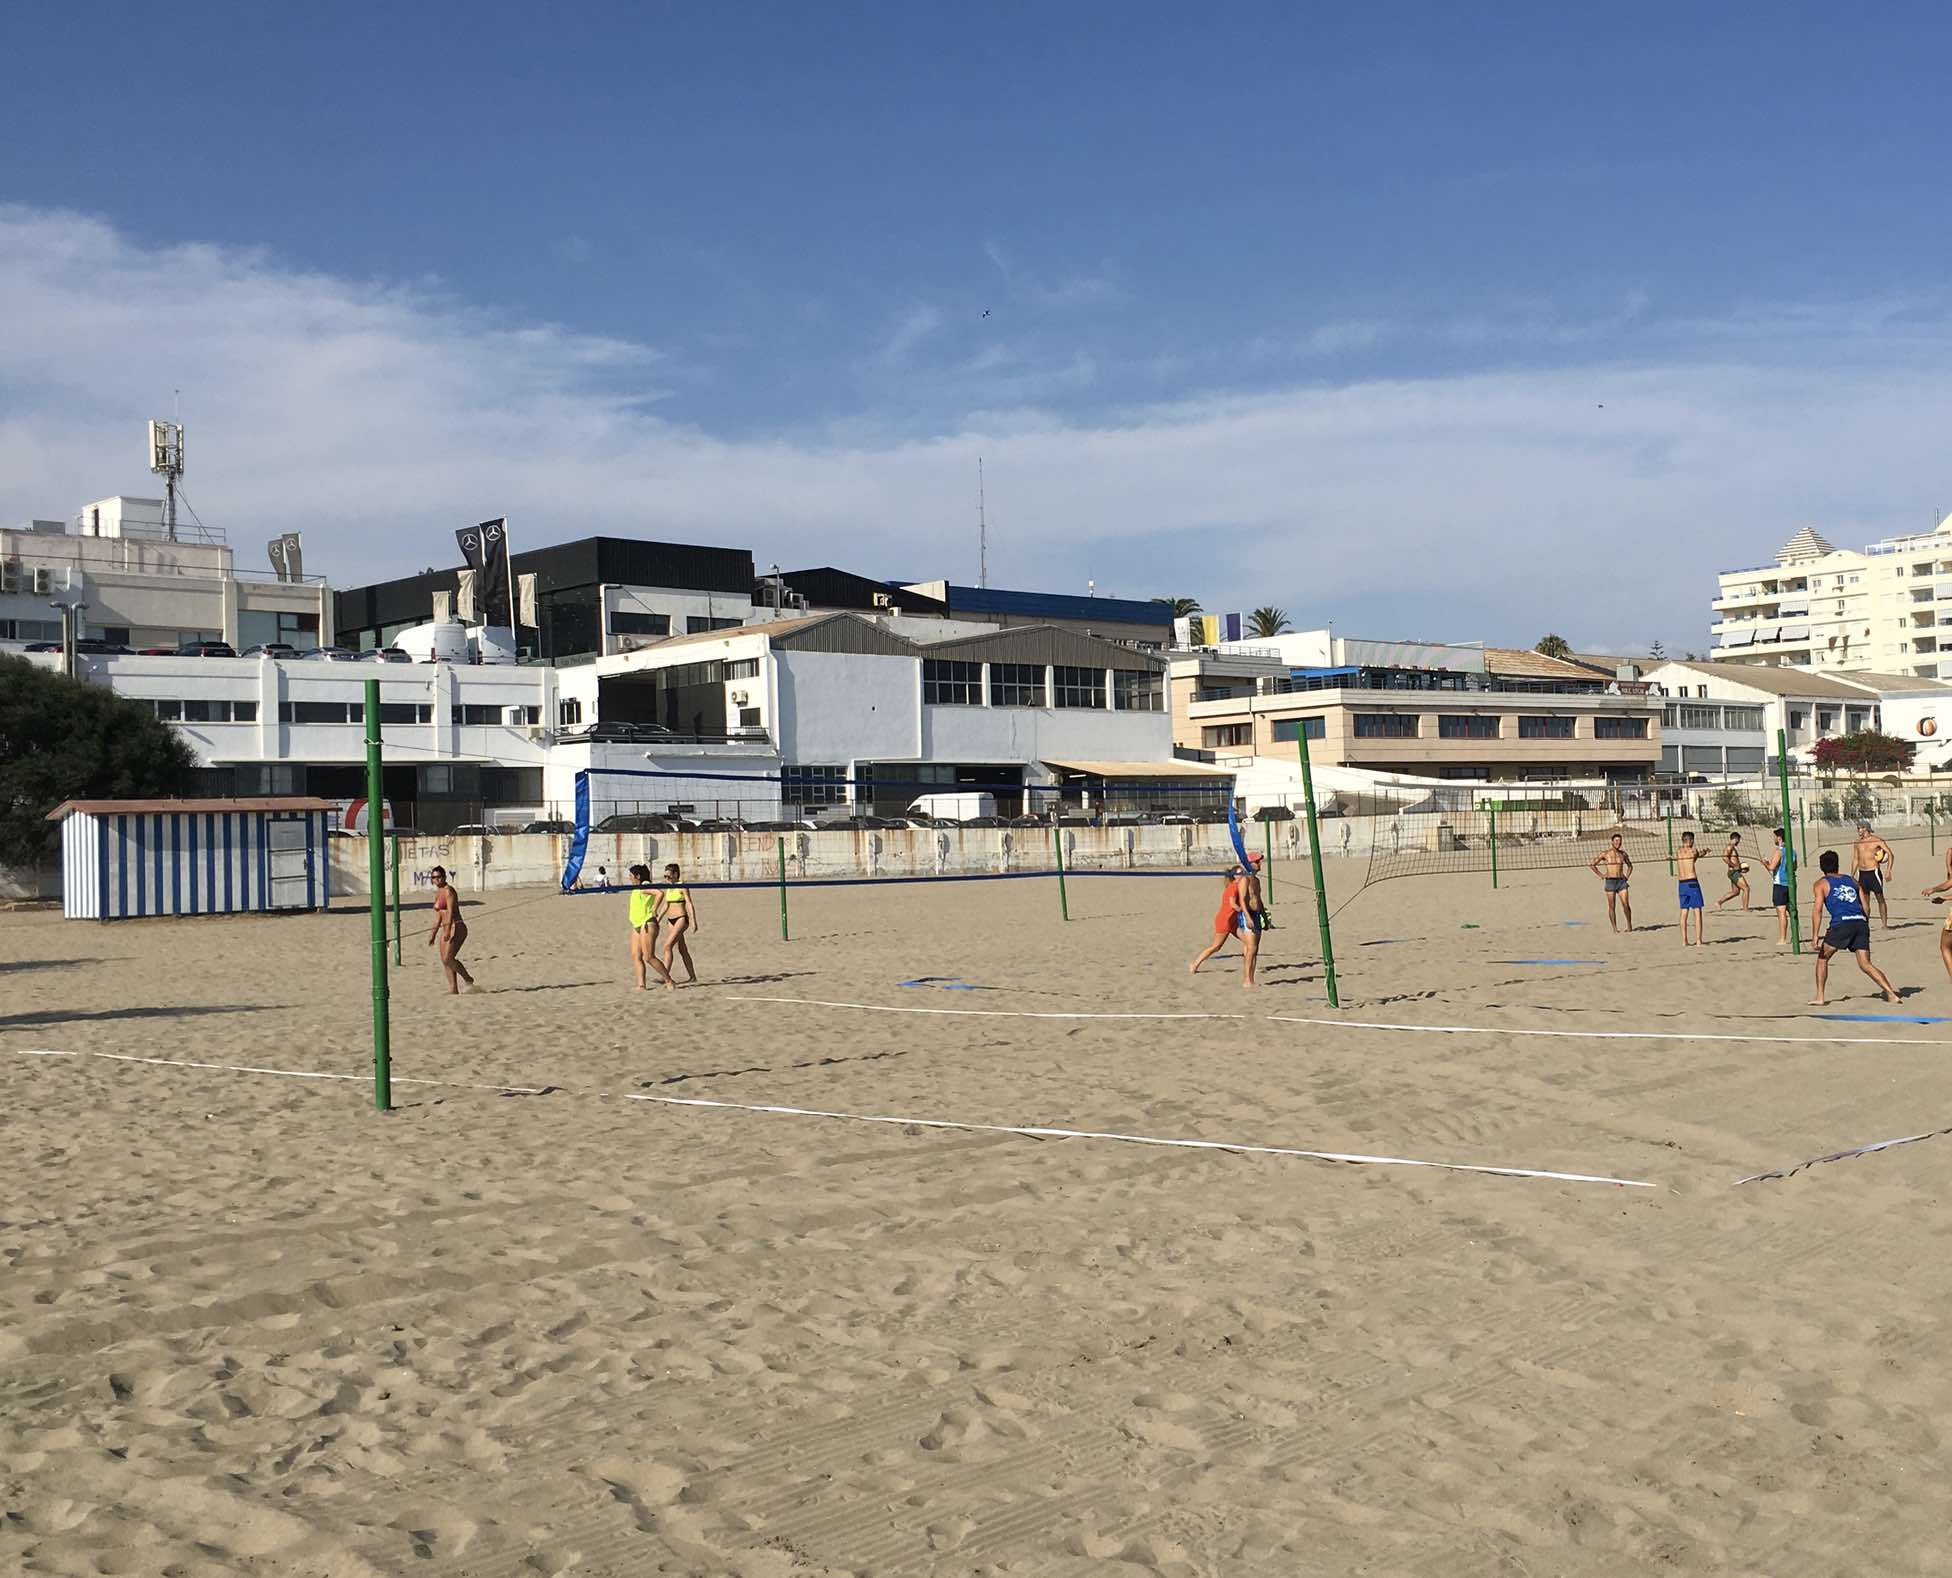 Volleybalveld bij El Cable strand